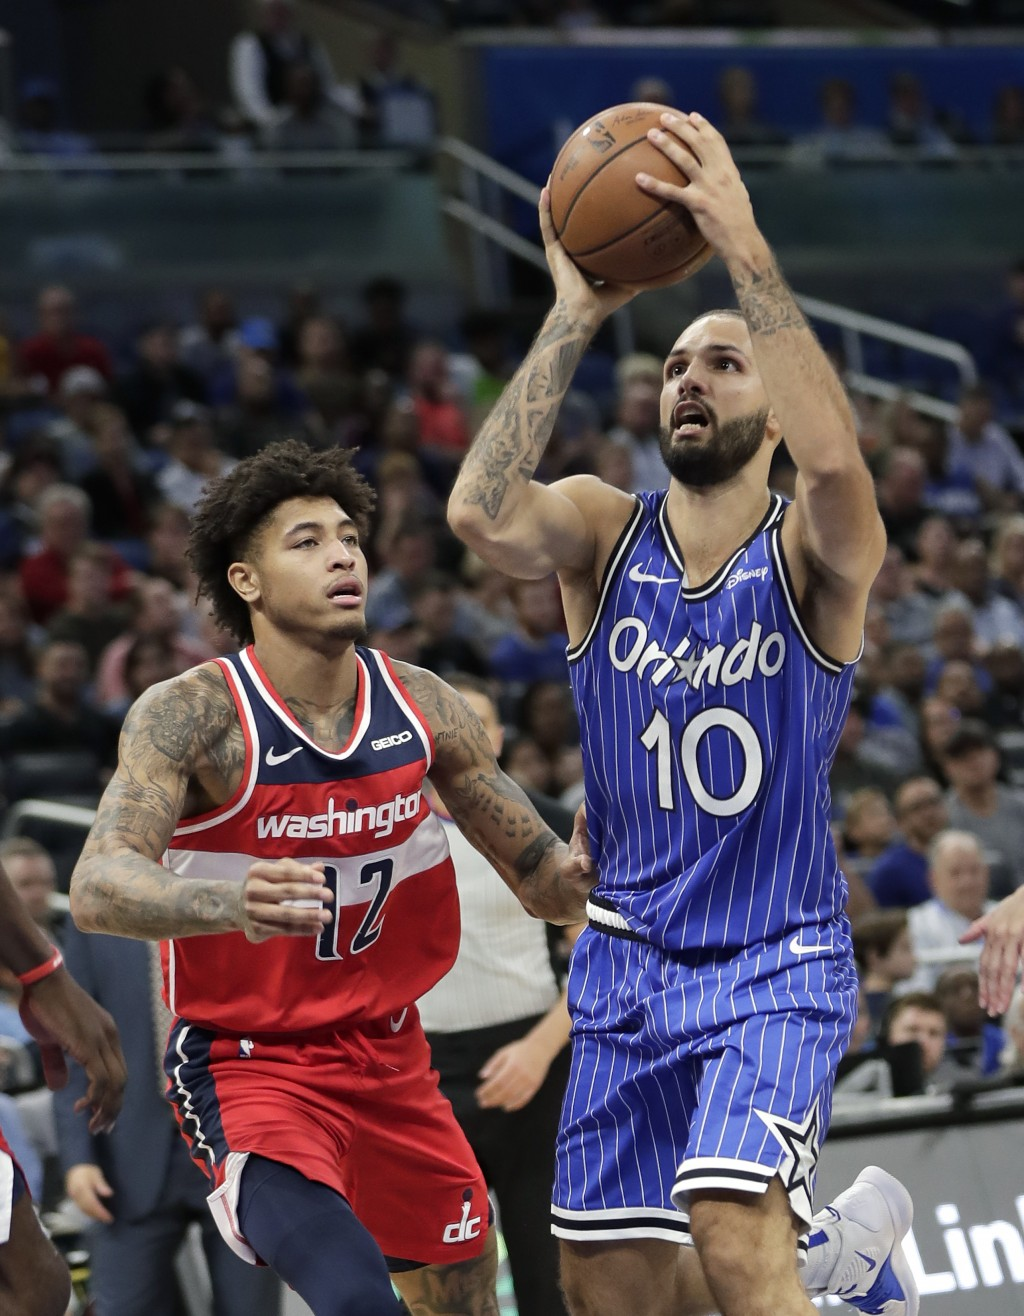 Orlando Magic guard Evan Fournier (10) goes up for a shot against Washington Wizards' Kelly Oubre Jr. (12) during the second half of an NBA basketball